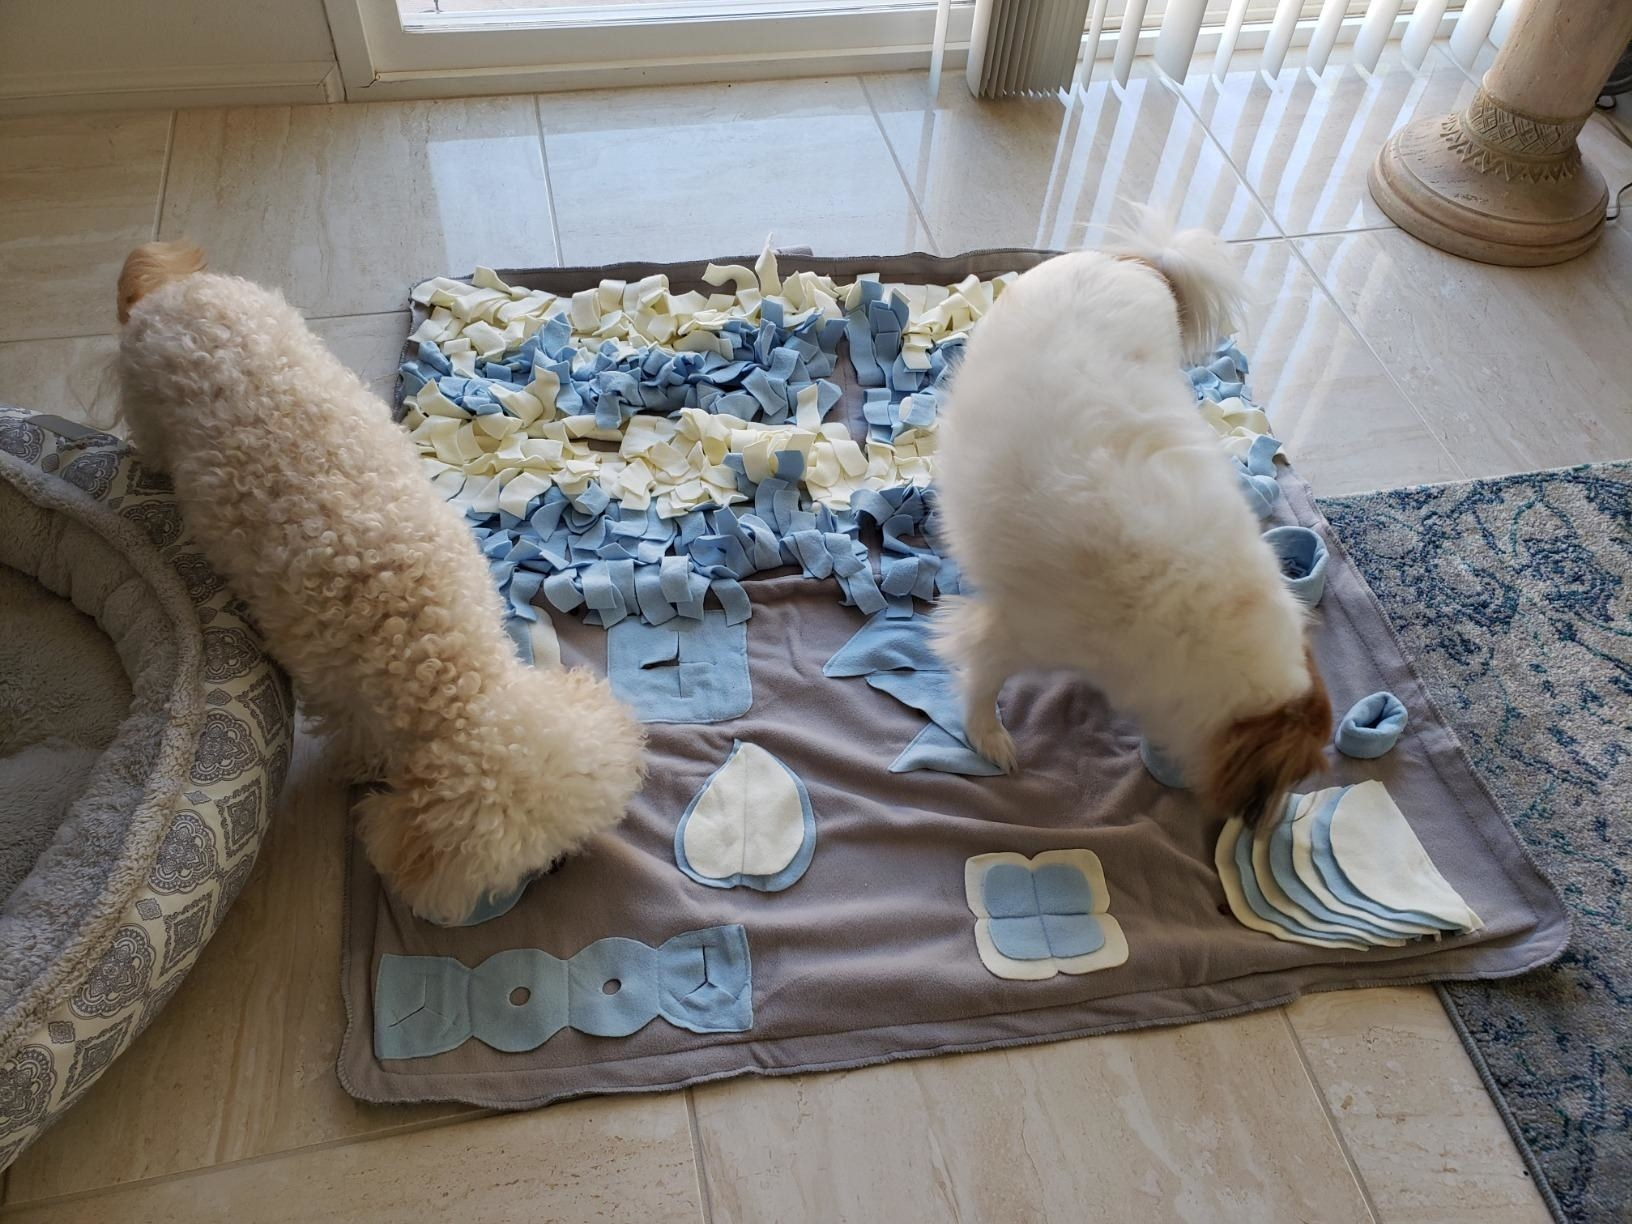 Reviewer photo of their dogs using the activity mat